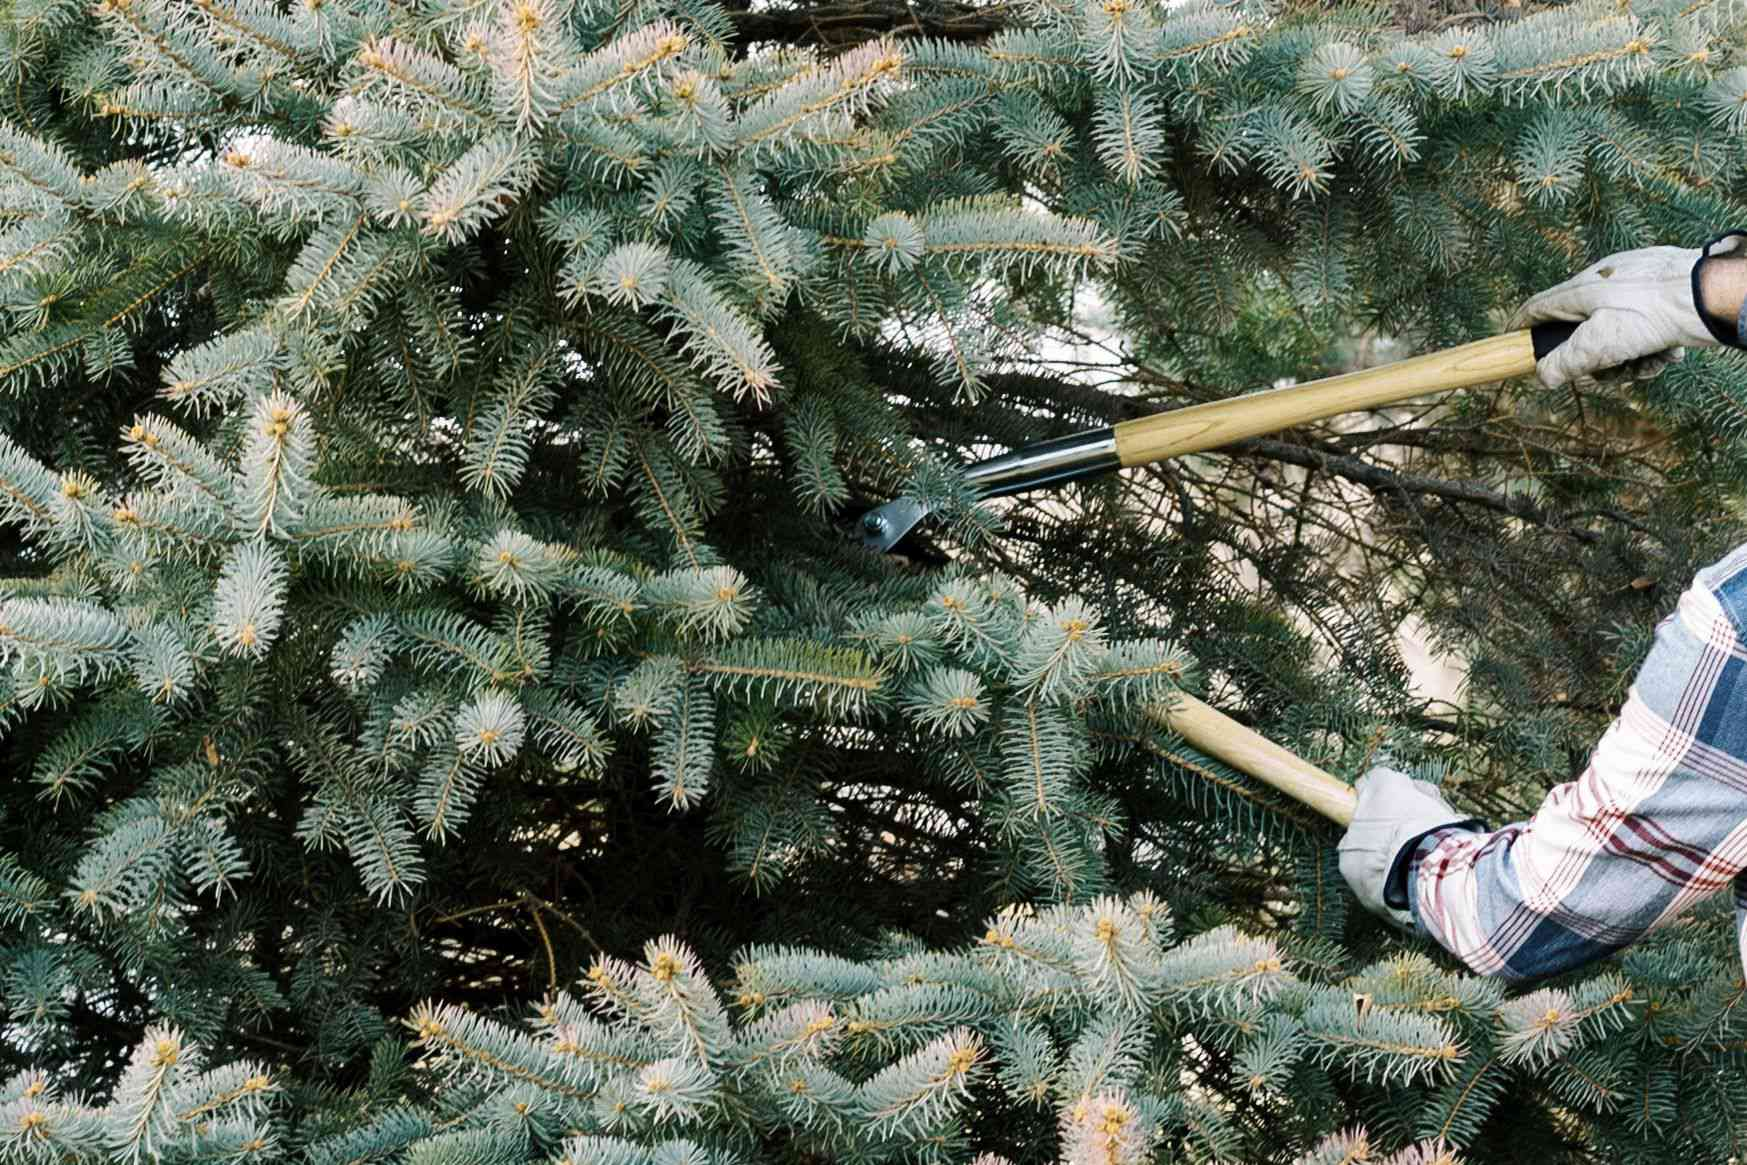 Evergreen tree branches with short needles being pruned with hand-held sheers